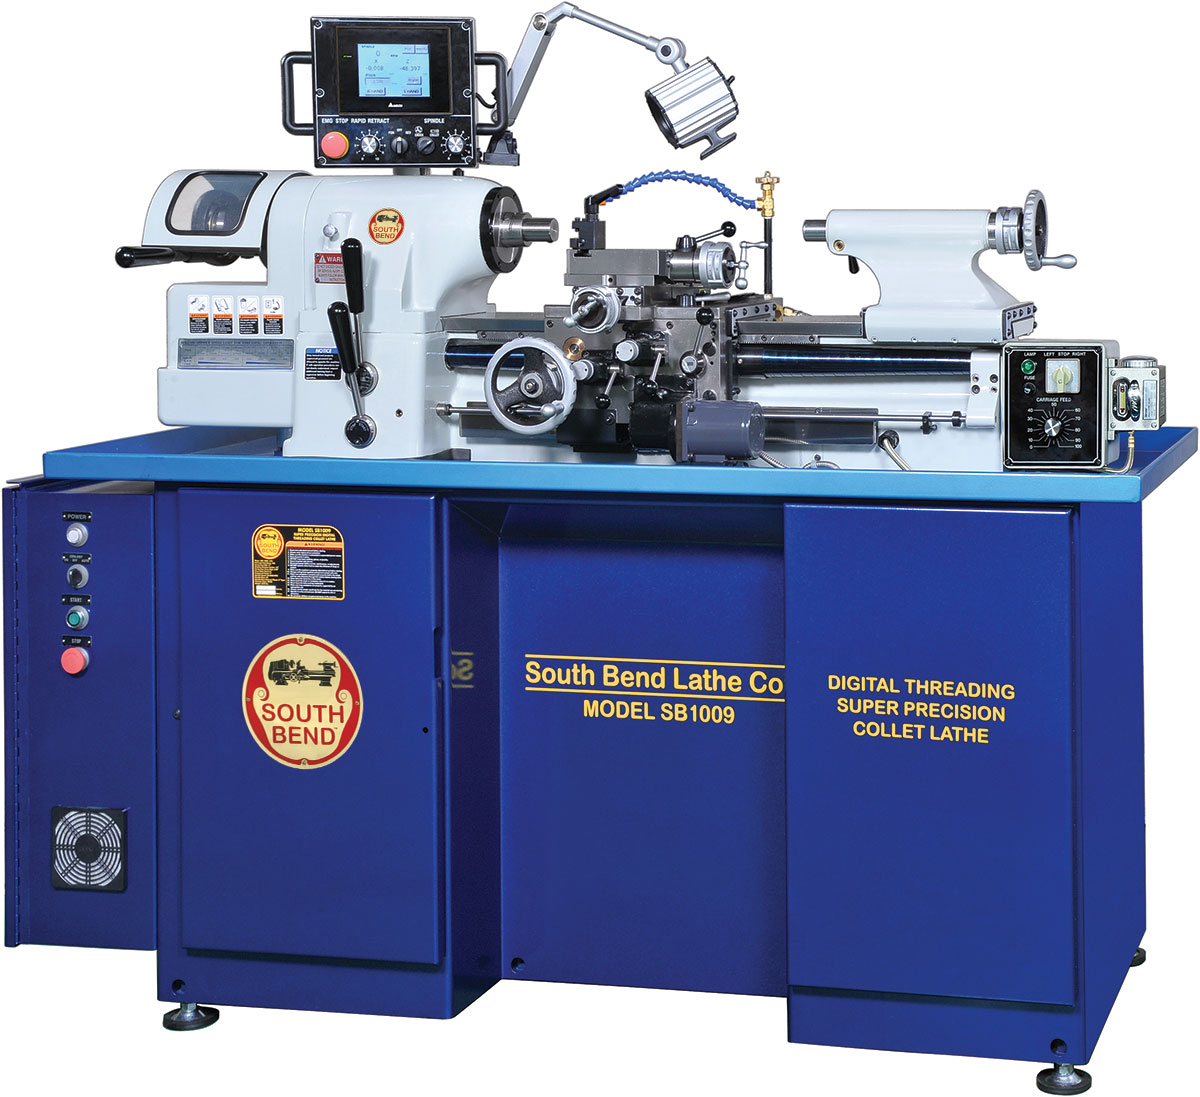 South Bend Super Precision Threading Collet Lathe Sb1009